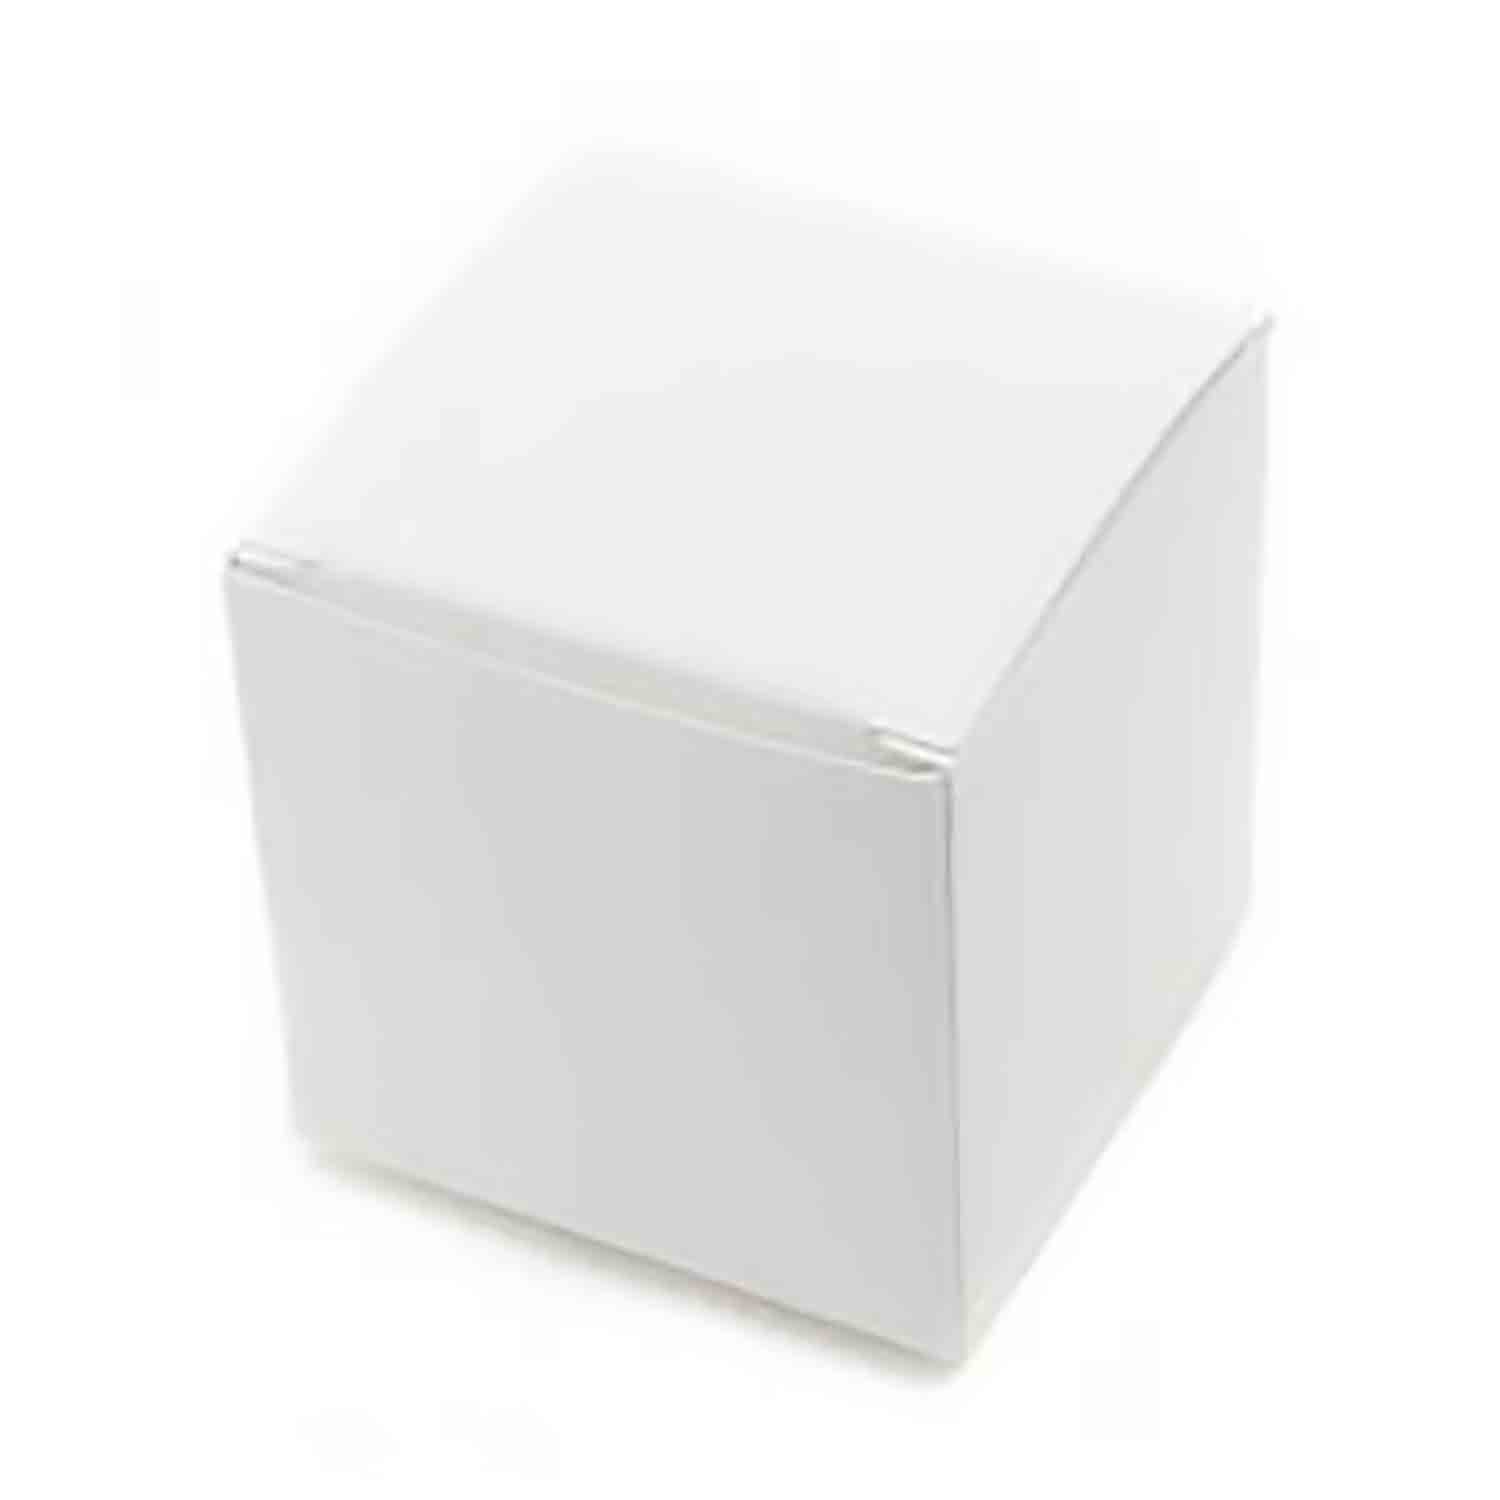 1 Pc. White Medium Truffle Candy Box